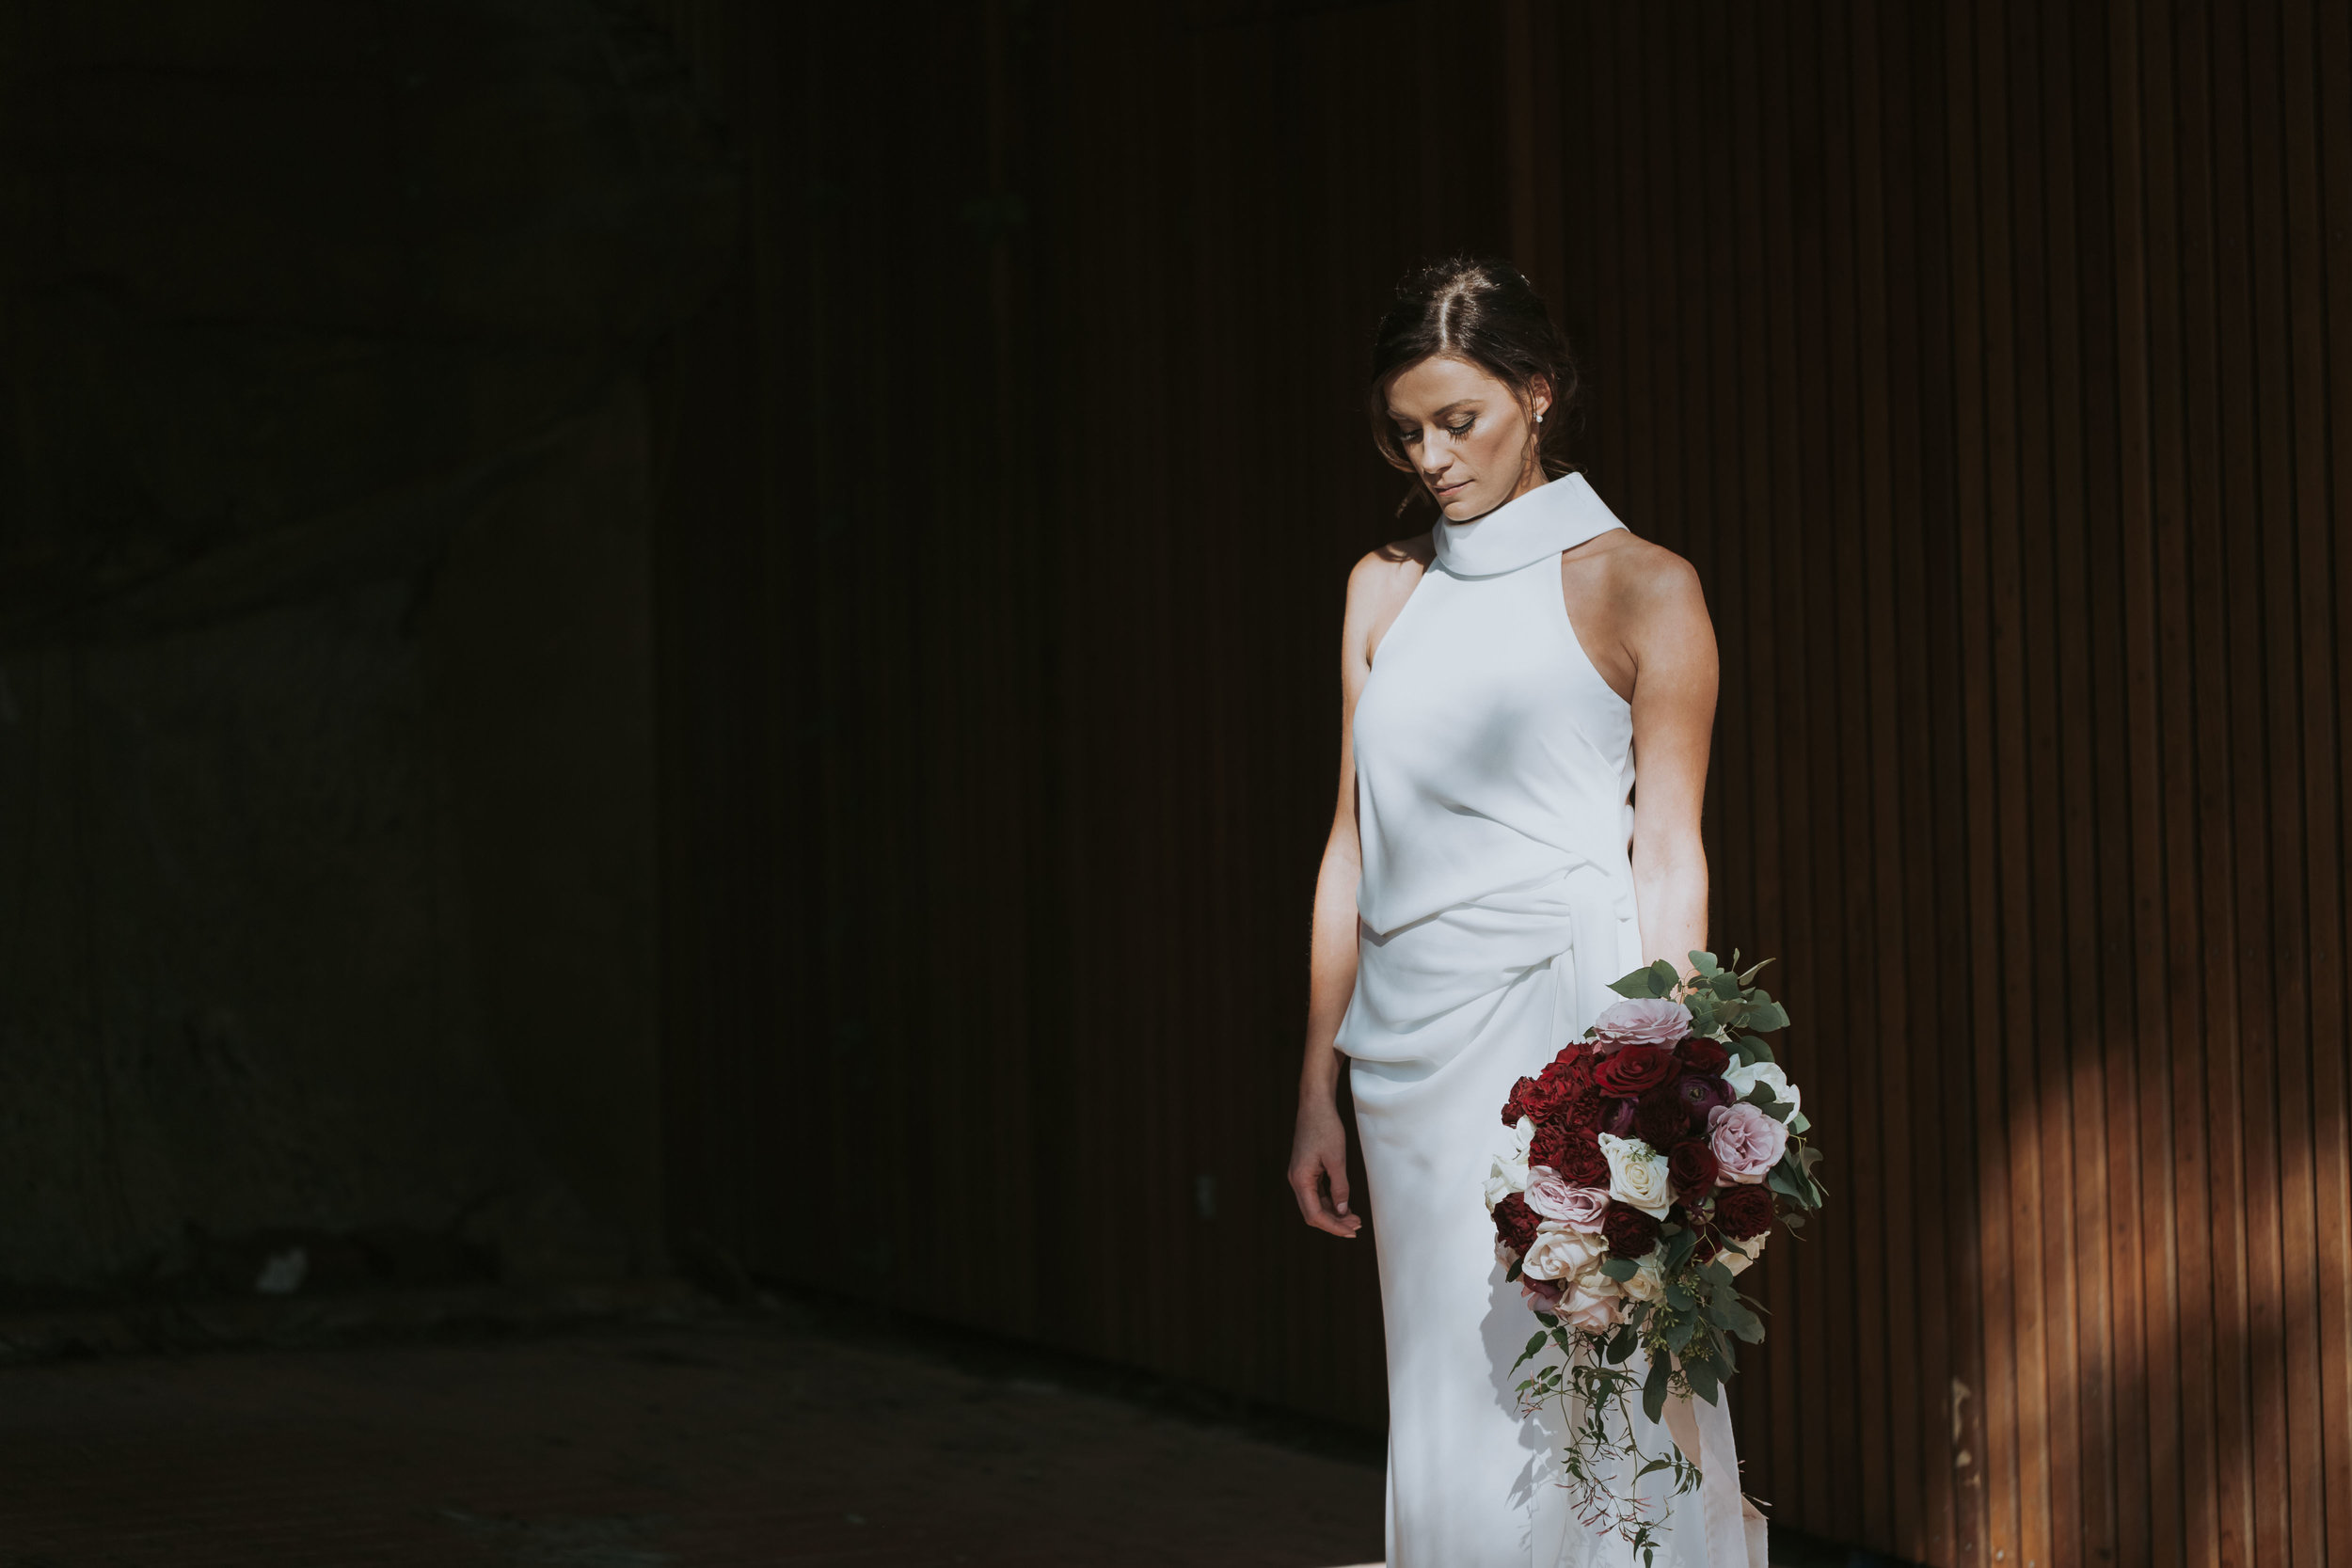 Beautiful, natural bride. Relaxed Sydney wedding photography.